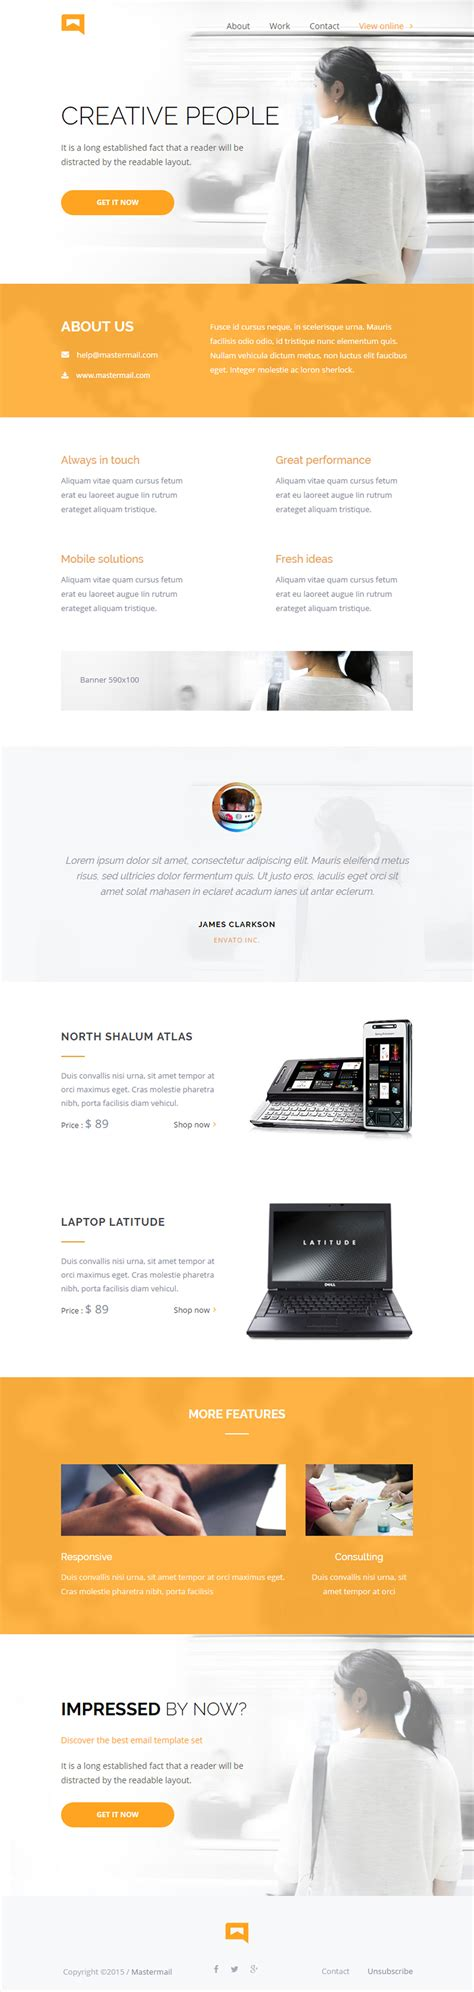 best responsive templates 5 best email newsletter template responsive miracle